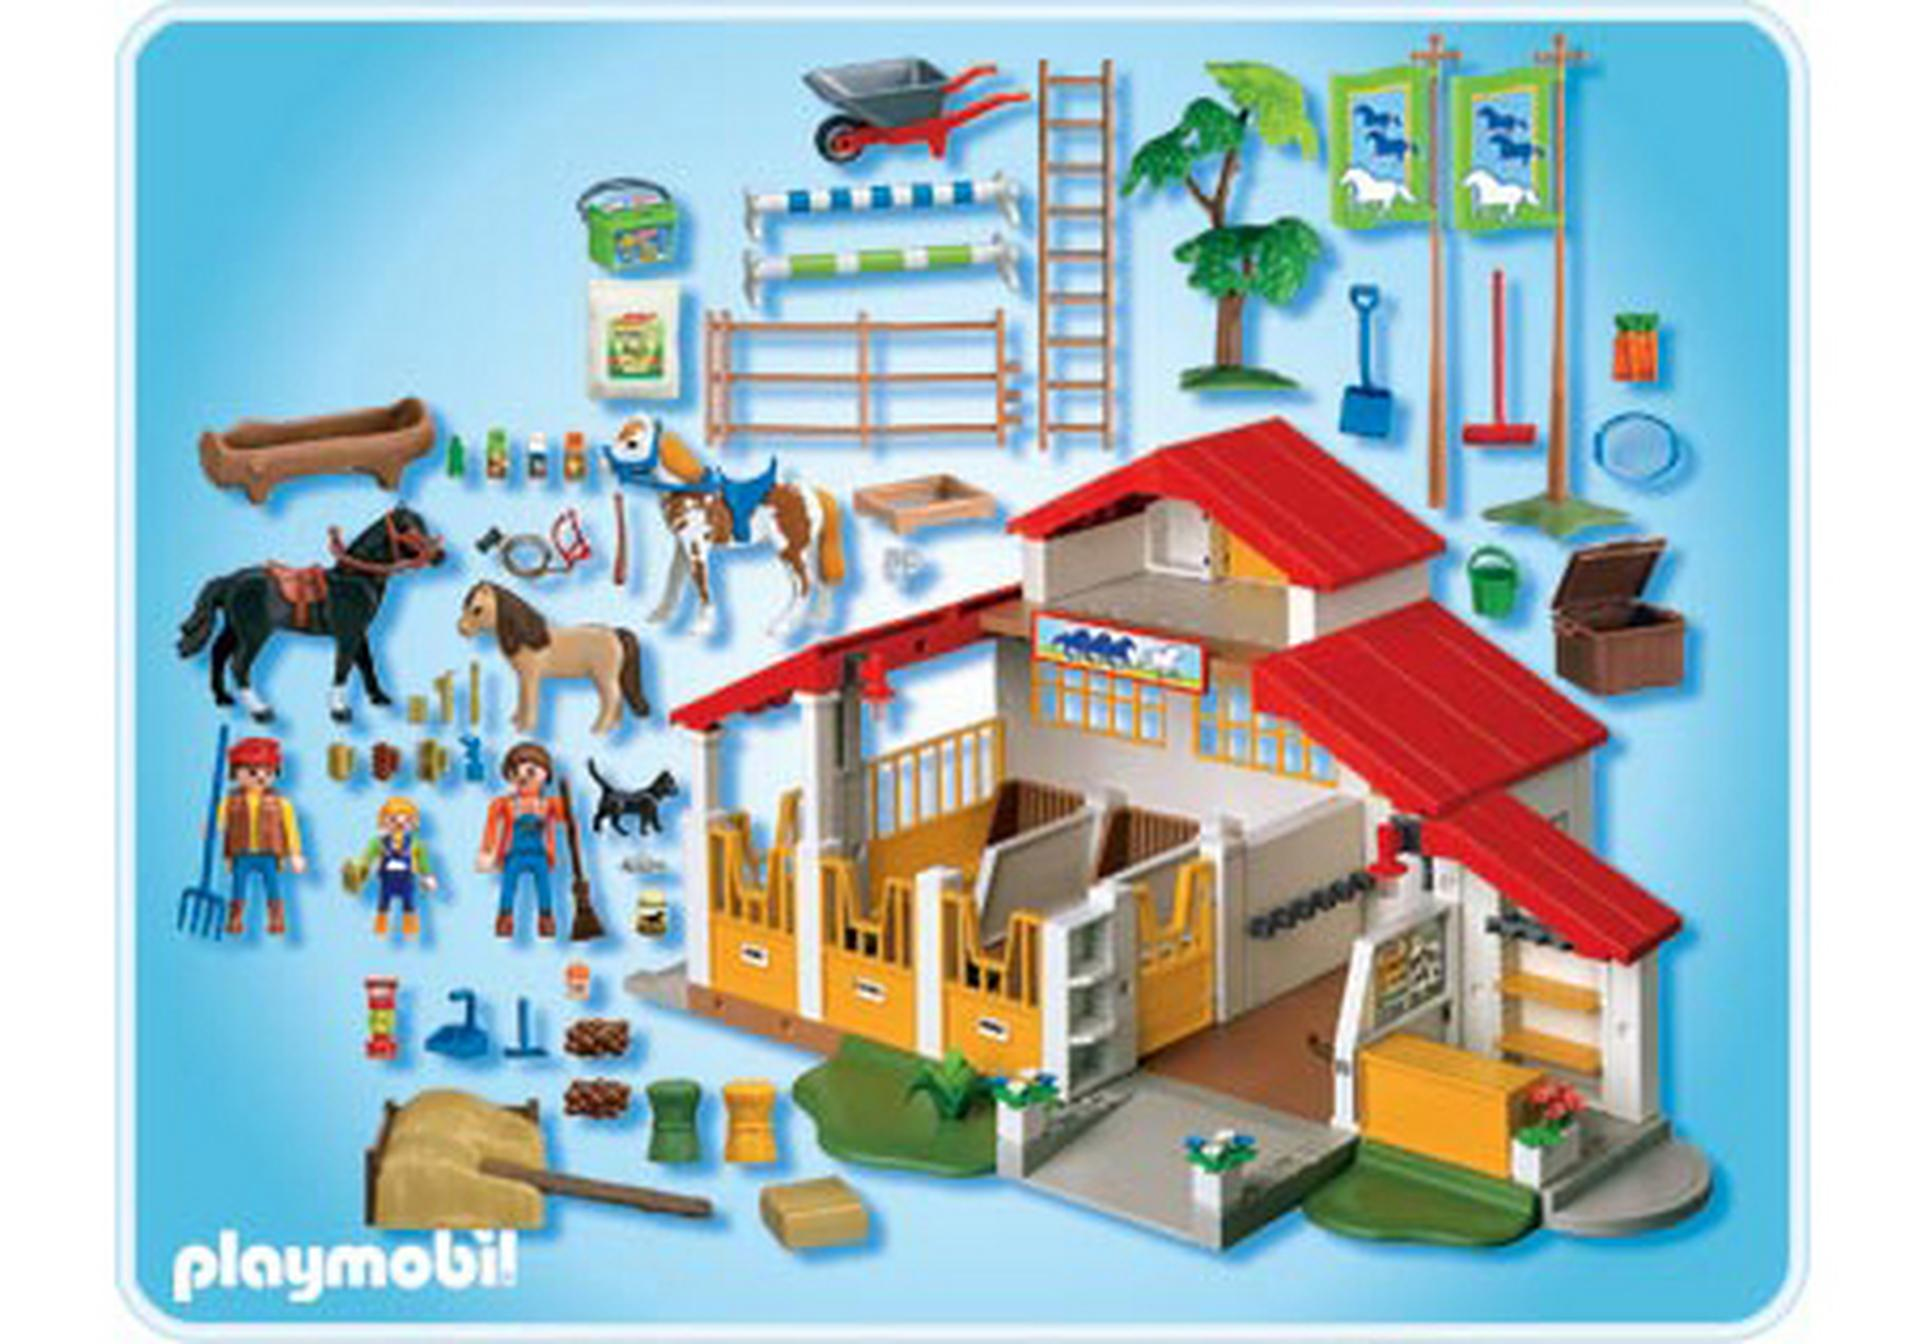 playmobil farm house instructions